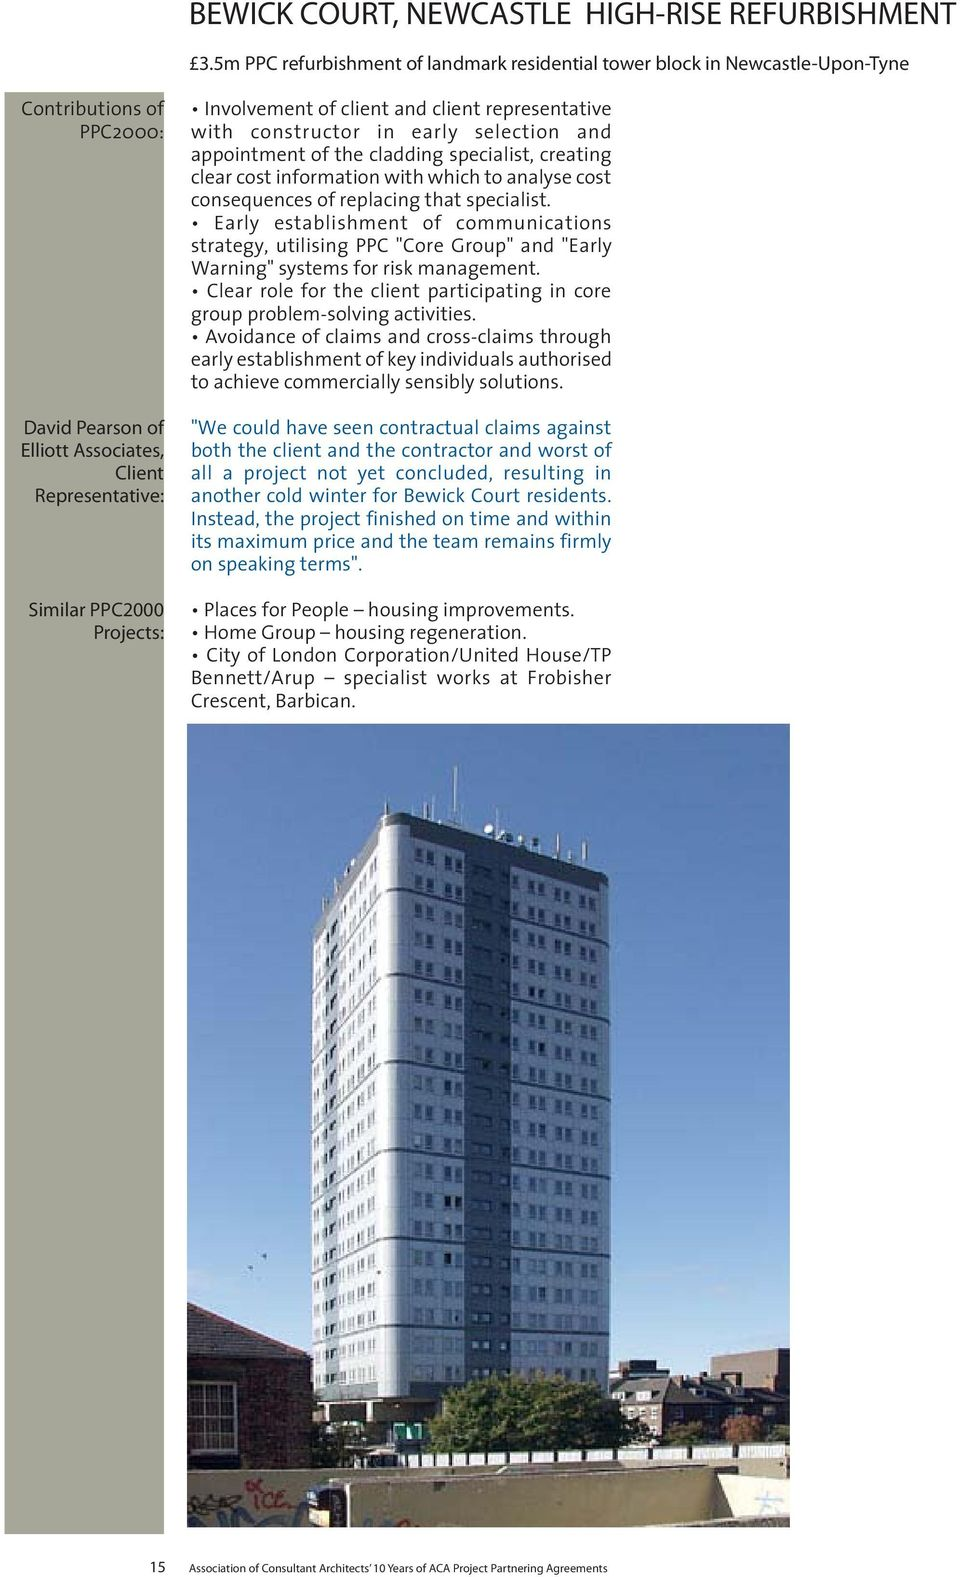 Involvement of client and client representative with constructor in early selection and appointment of the cladding specialist, creating clear cost information with which to analyse cost consequences